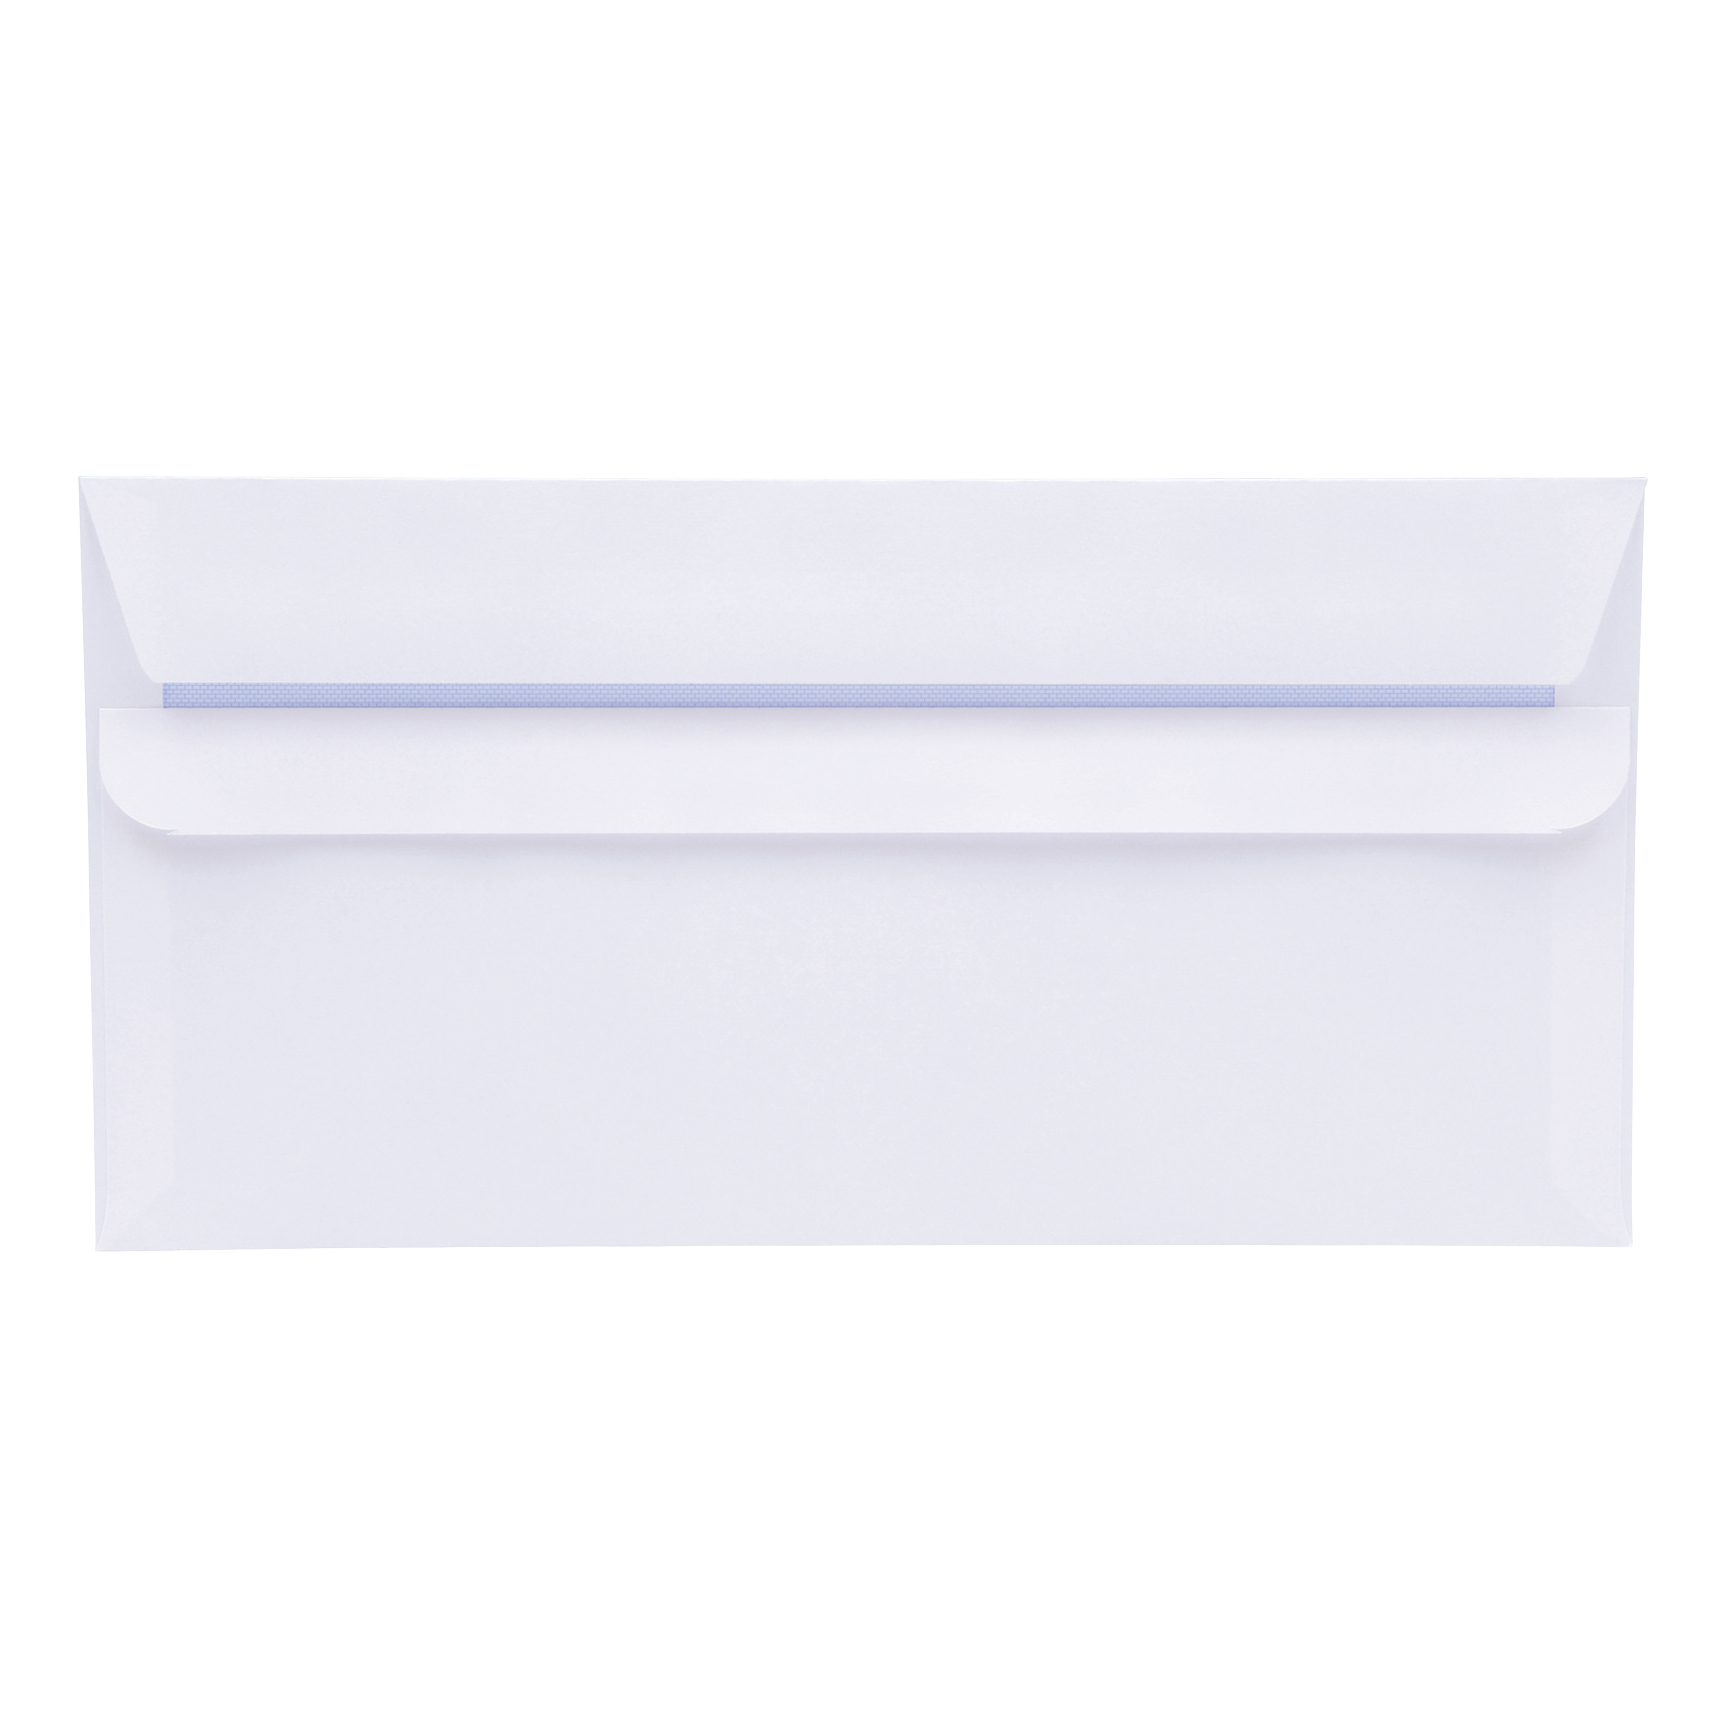 DL 5 Star Office Envelopes PEFC Wallet Self Seal 90gsm DL 220x110mm White Pack 500